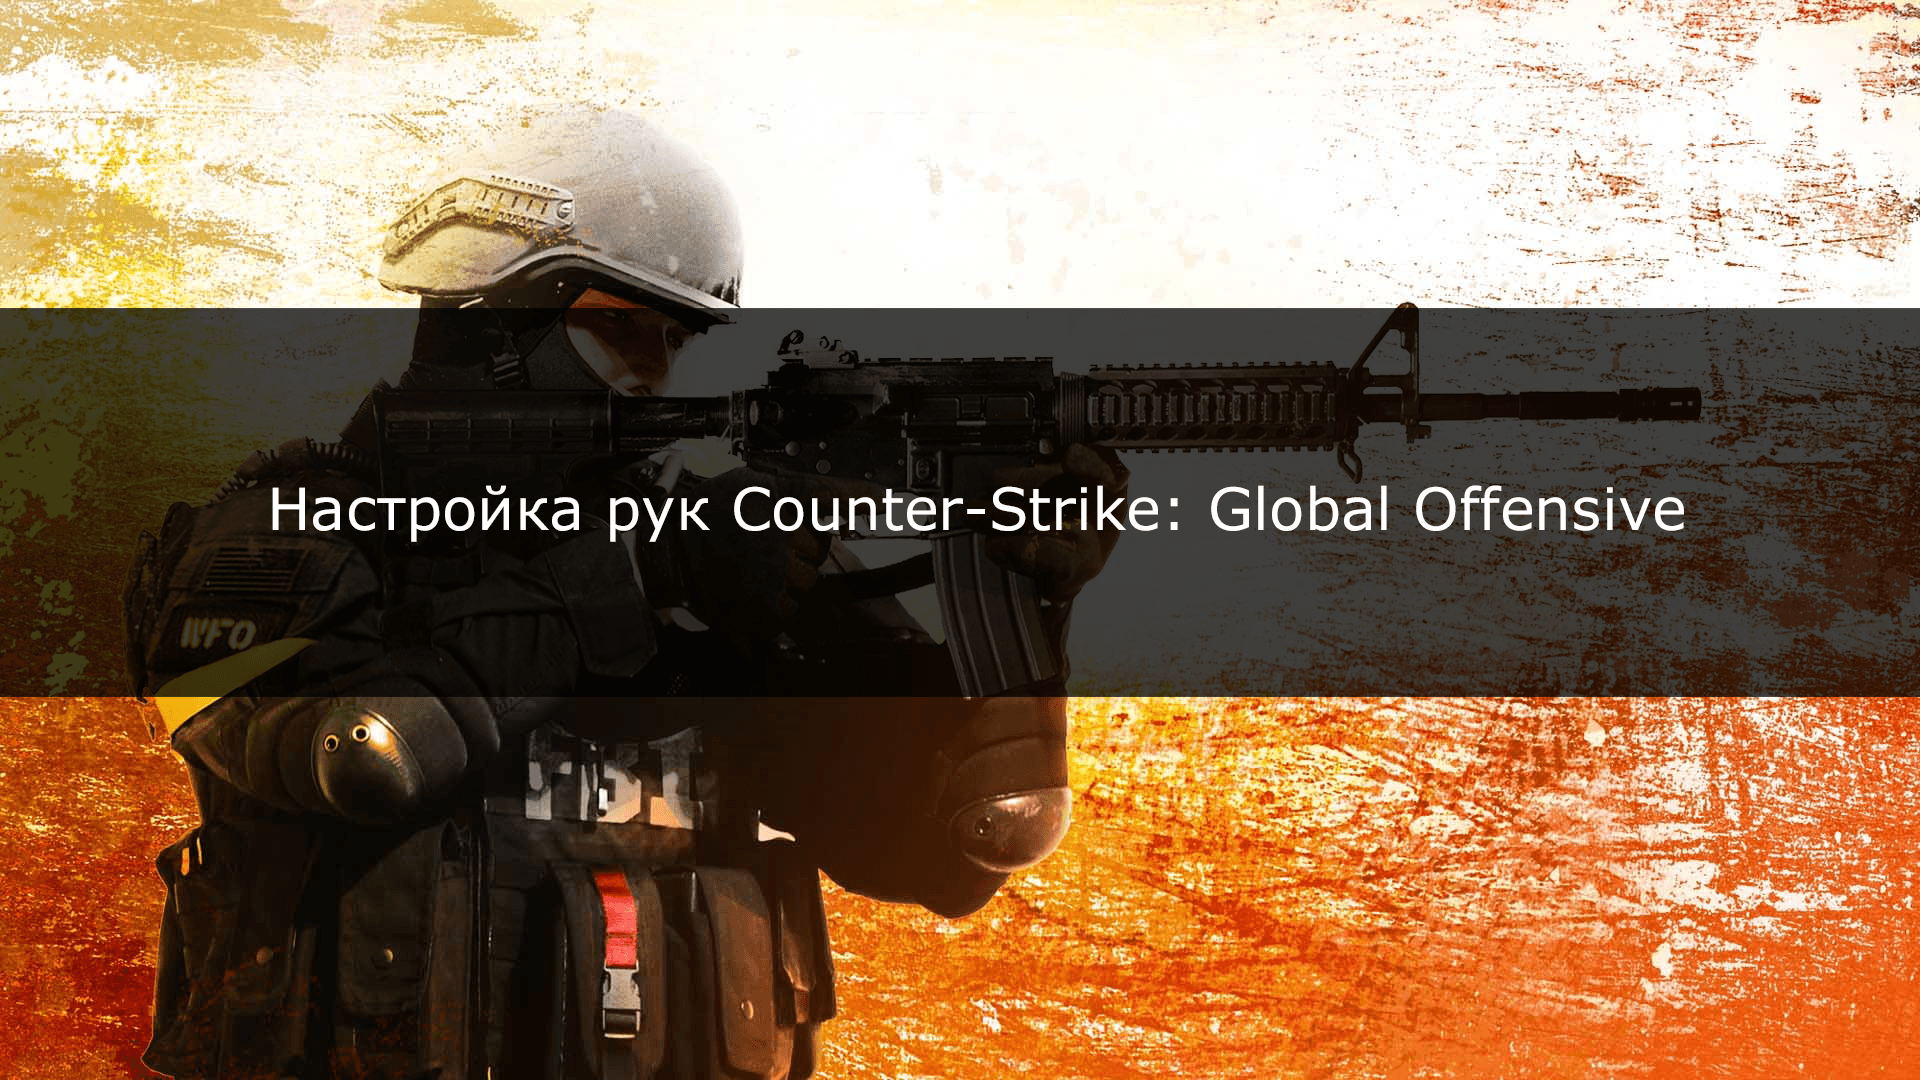 https://mmcs.pro/nastrojka-ruk-counter-strike-global-offensive/